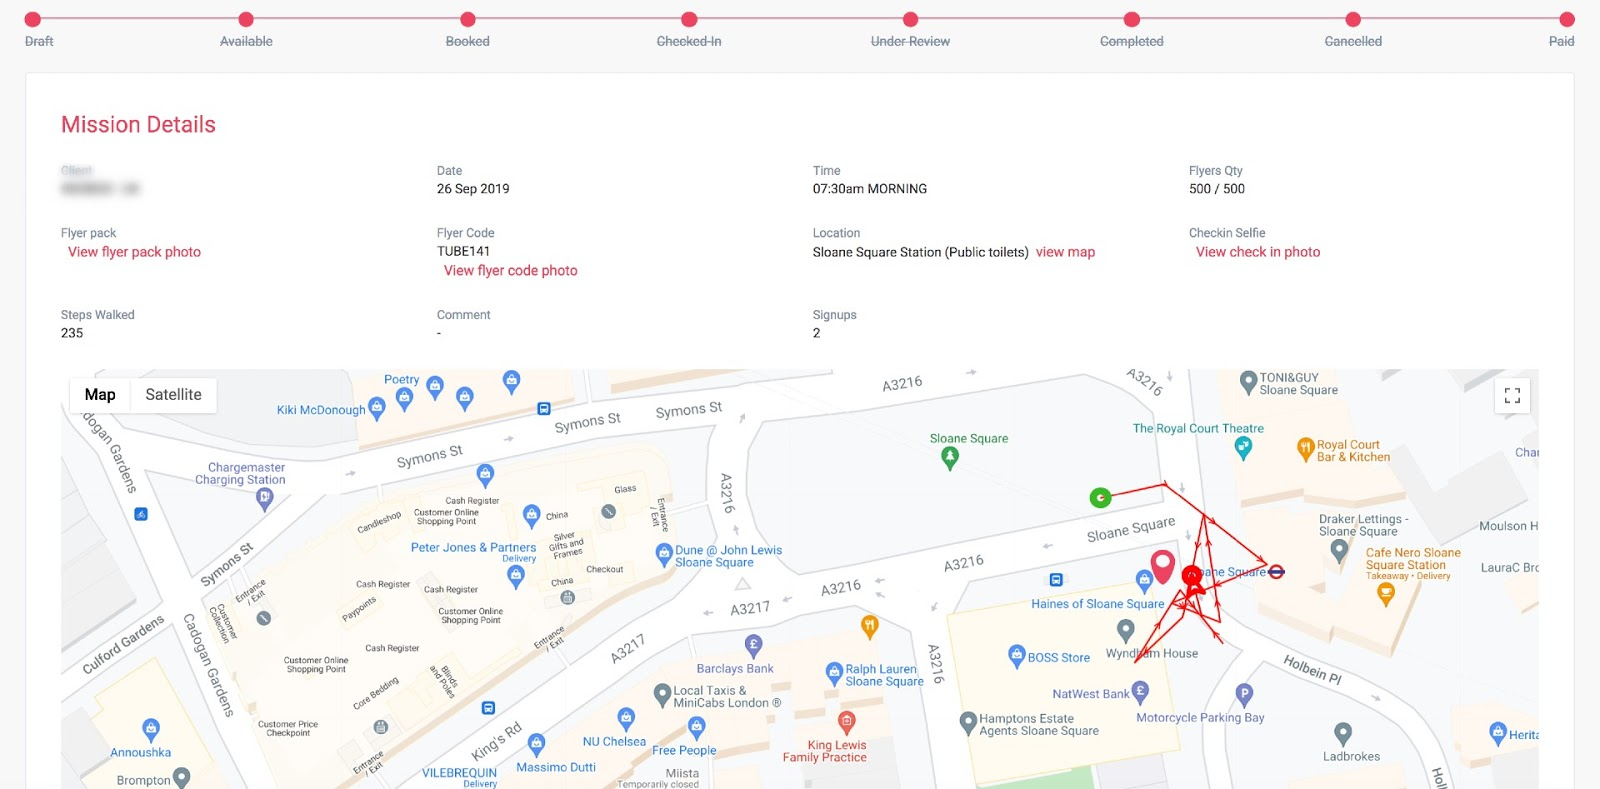 Customers can track ambassadors through GPS in real-time.